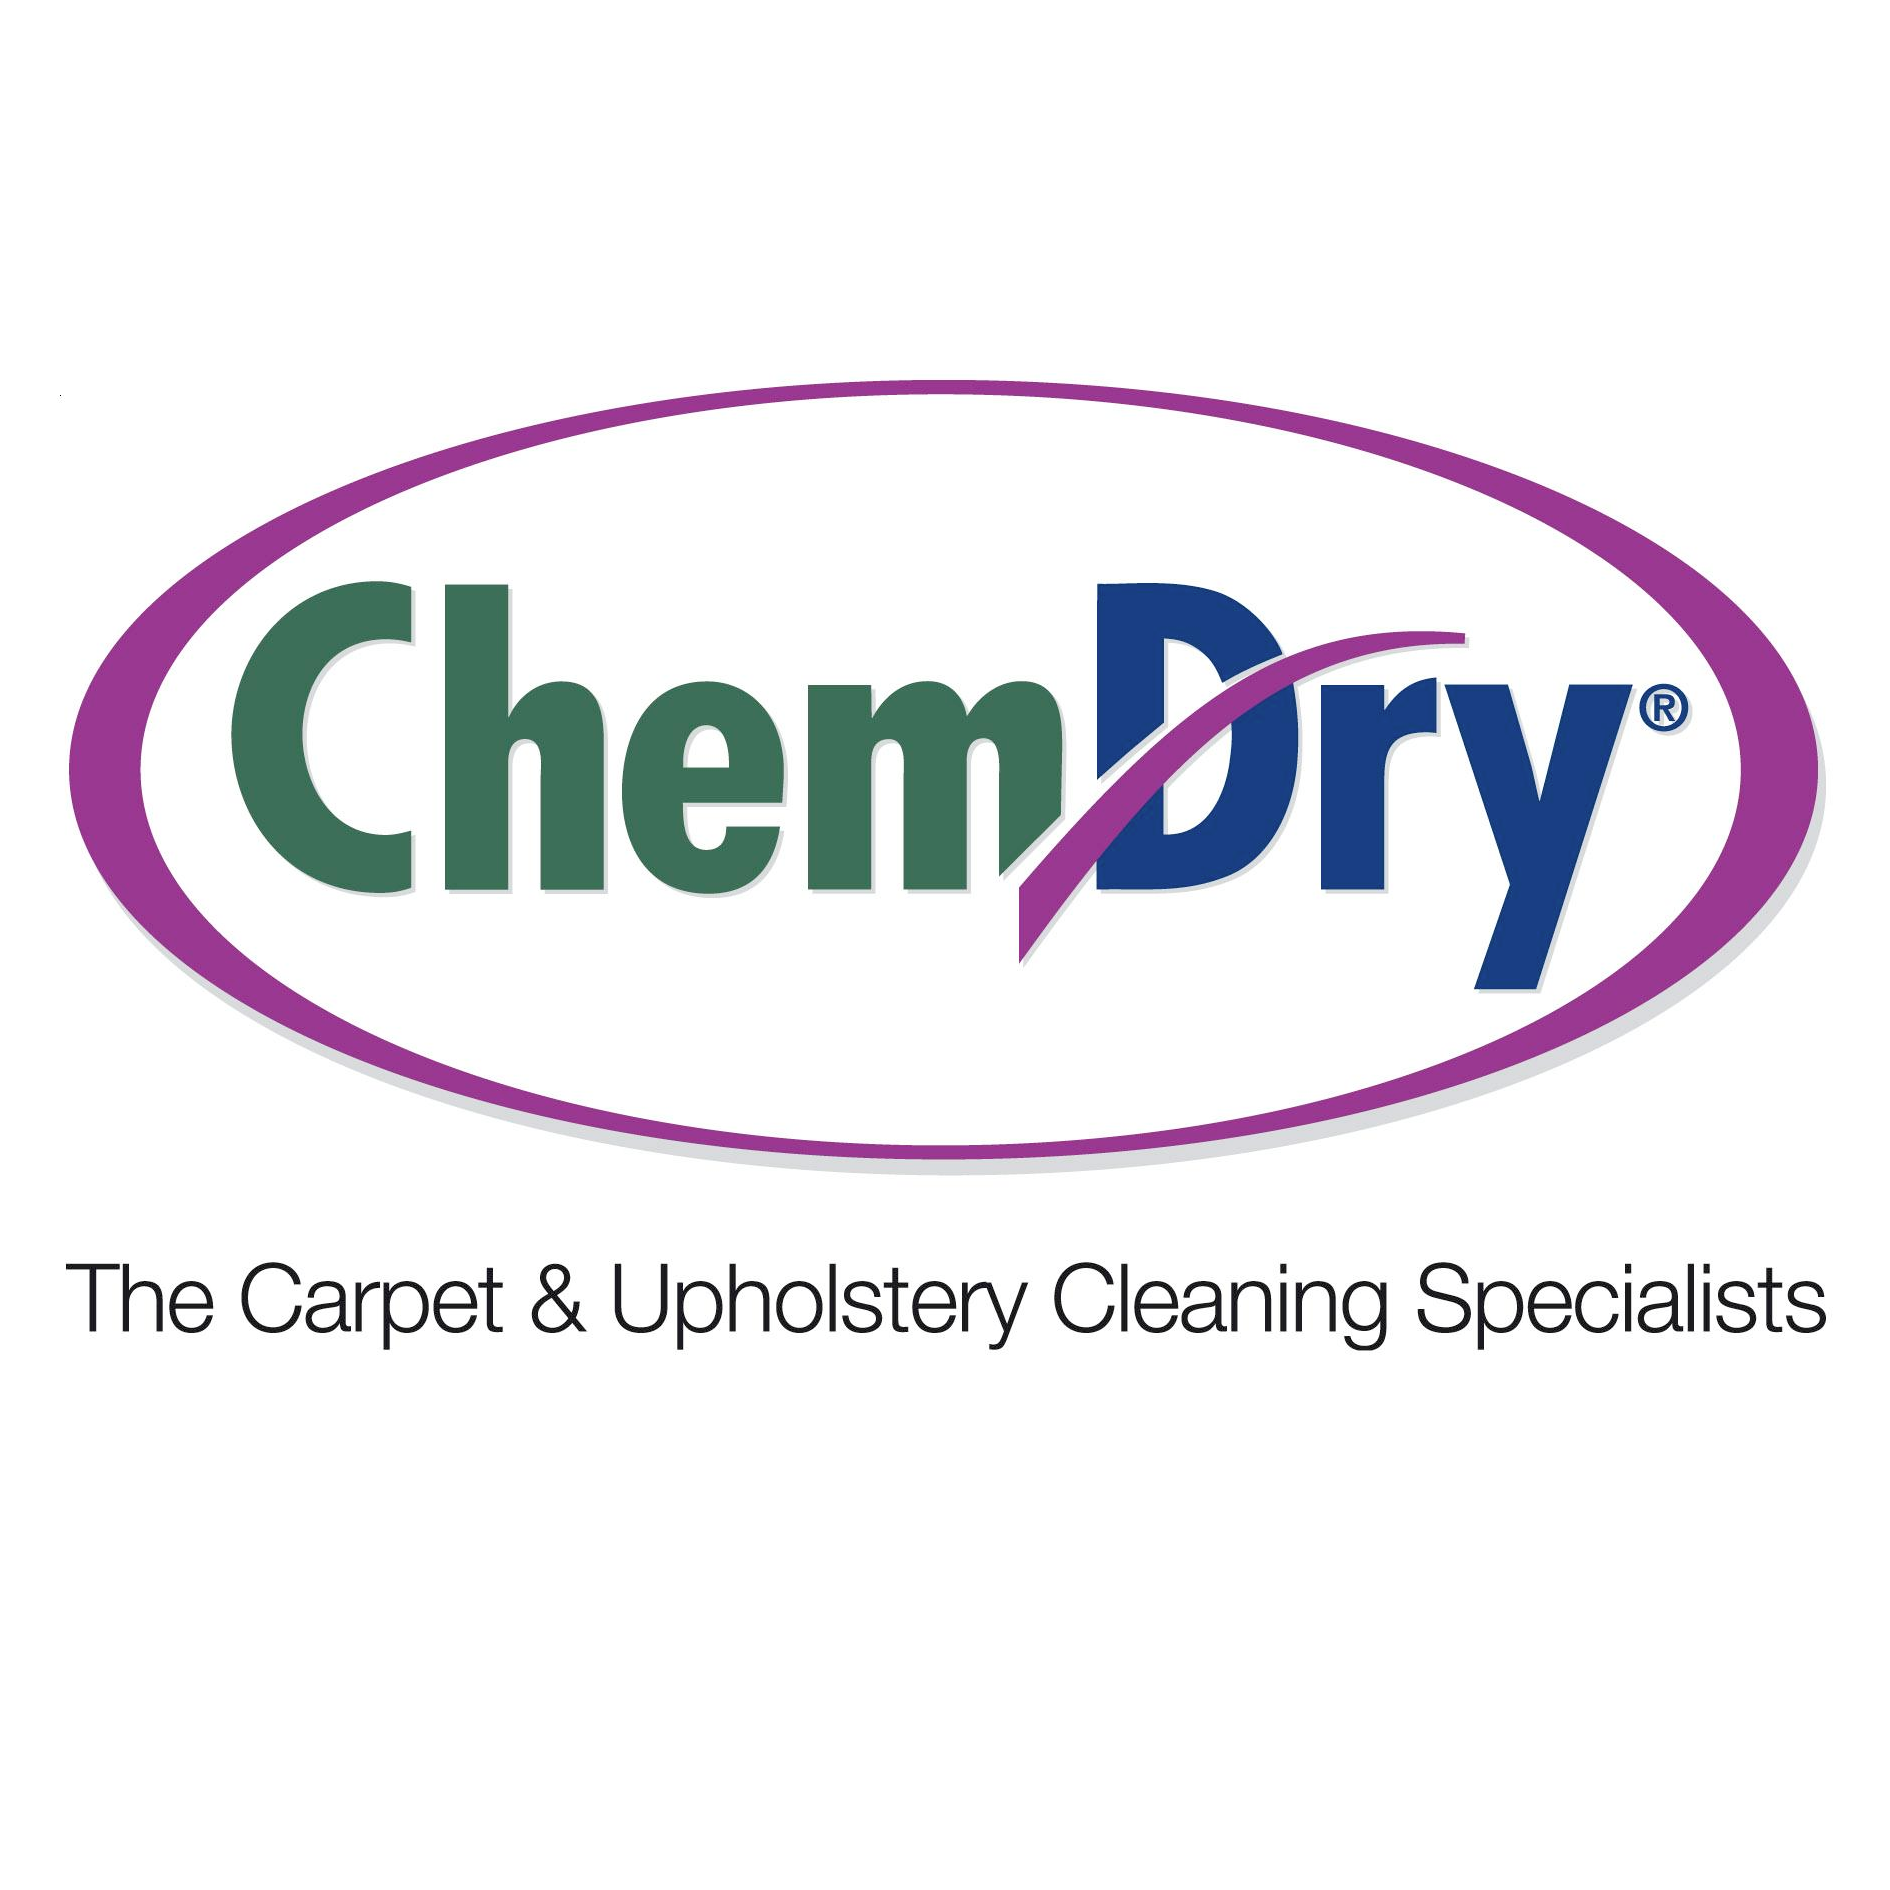 ChemdryCleaning franchise